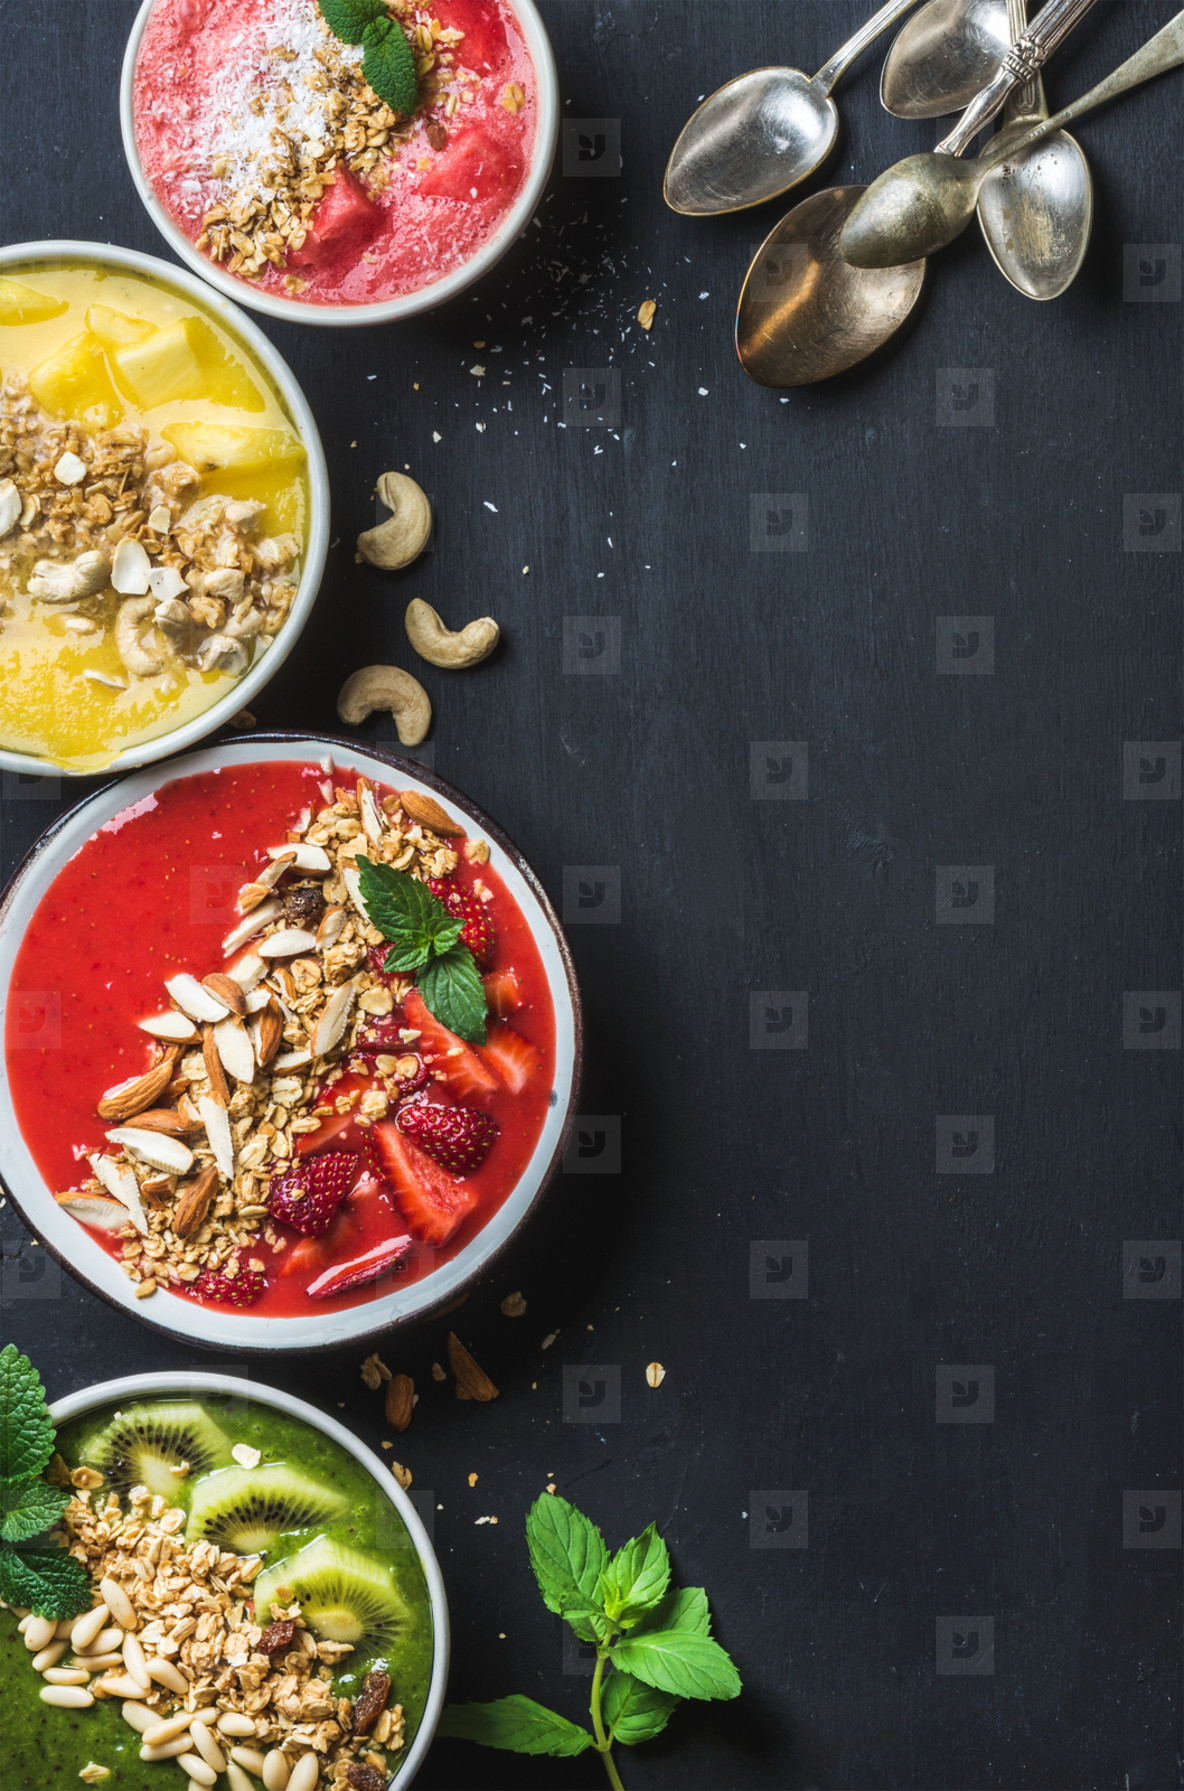 Healthy summer breakfast concept  Colorful fruit smoothie bowls with nuts  oat granola and mint leaves  five silver spoons on black background  Yellow  pink  red  green  Top view  copy space